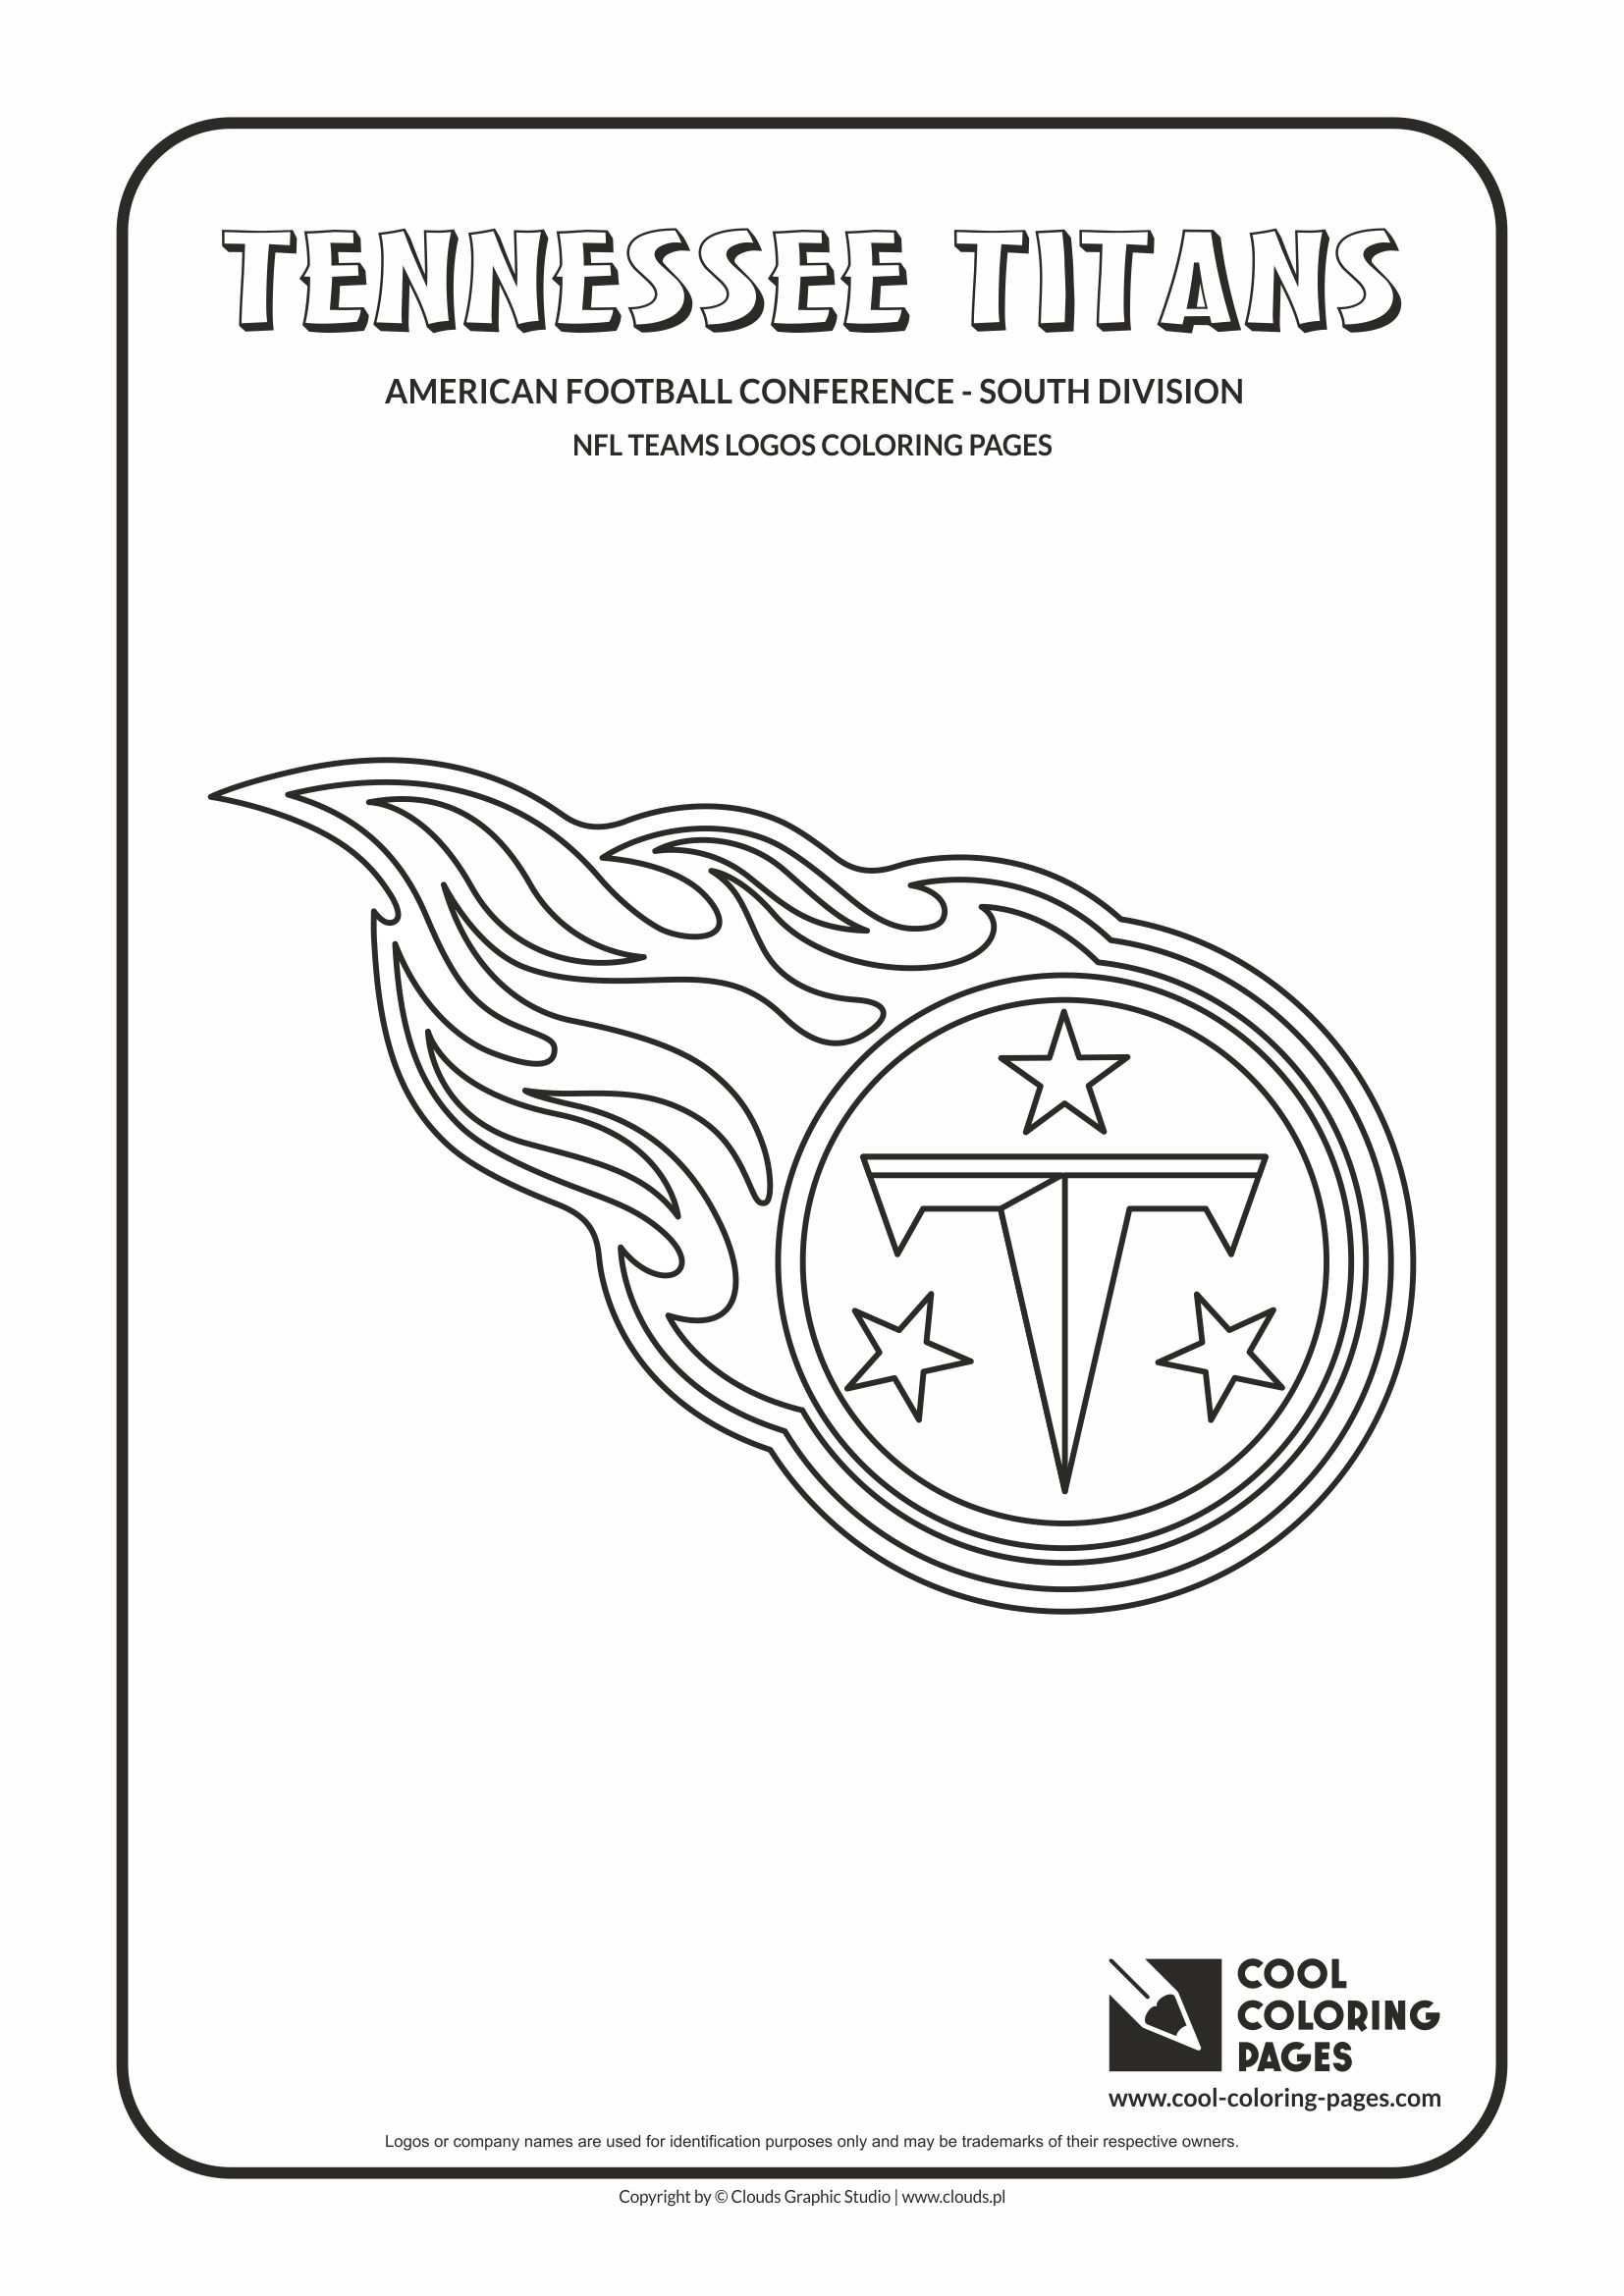 Cool Coloring Pages - NFL American Football Clubs Logos - American Football Conference - South Division / Tennessee Titans logo / Coloring page with Tennessee Titans logo